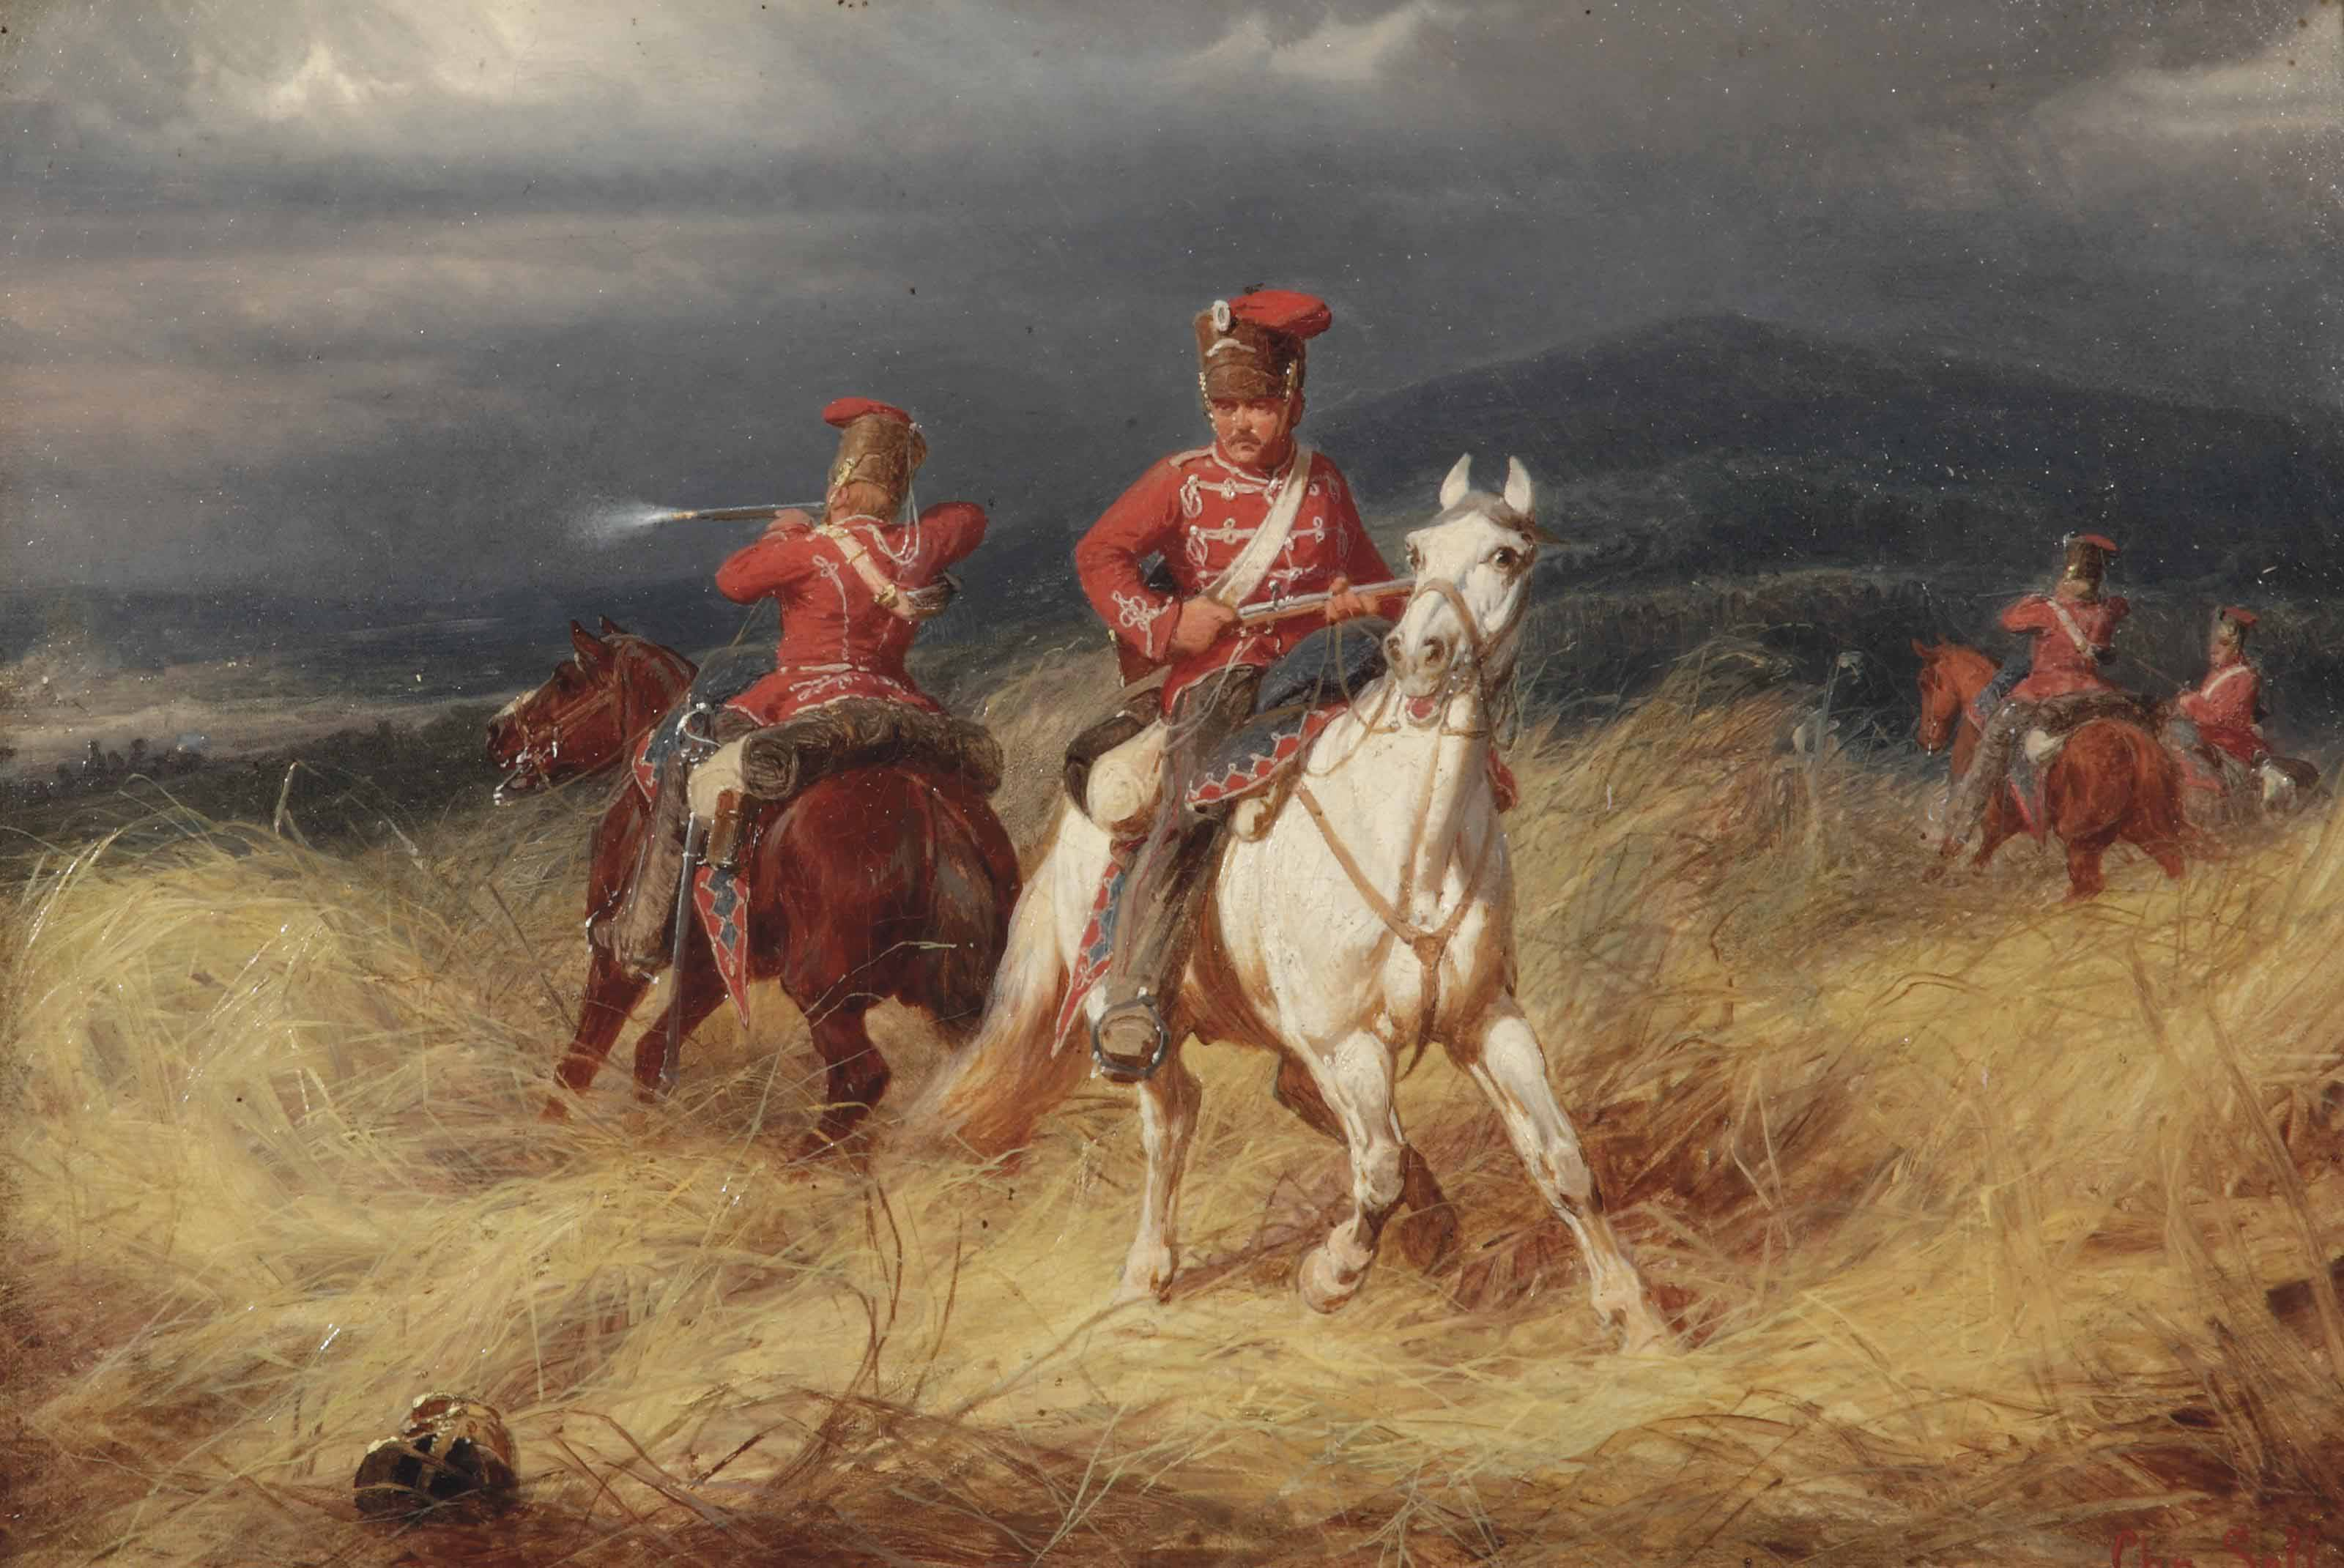 Hussars in battle